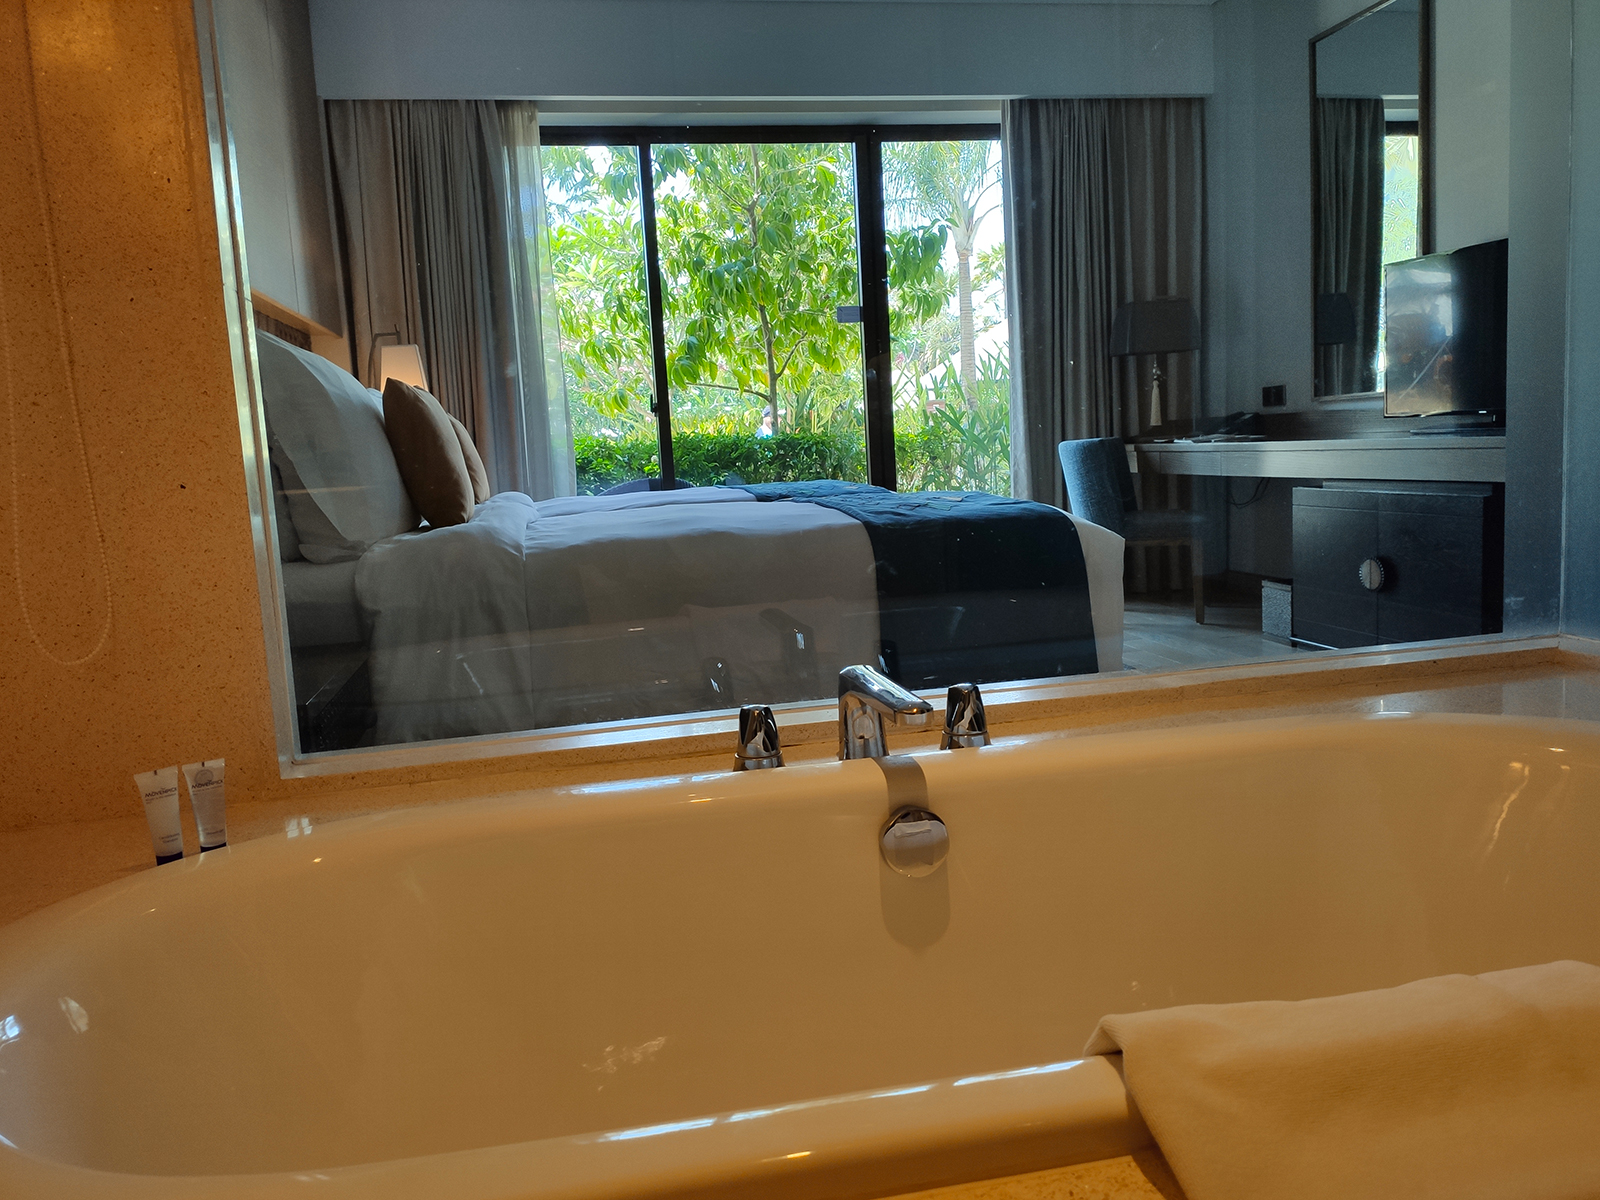 movenpick-room-bathtub